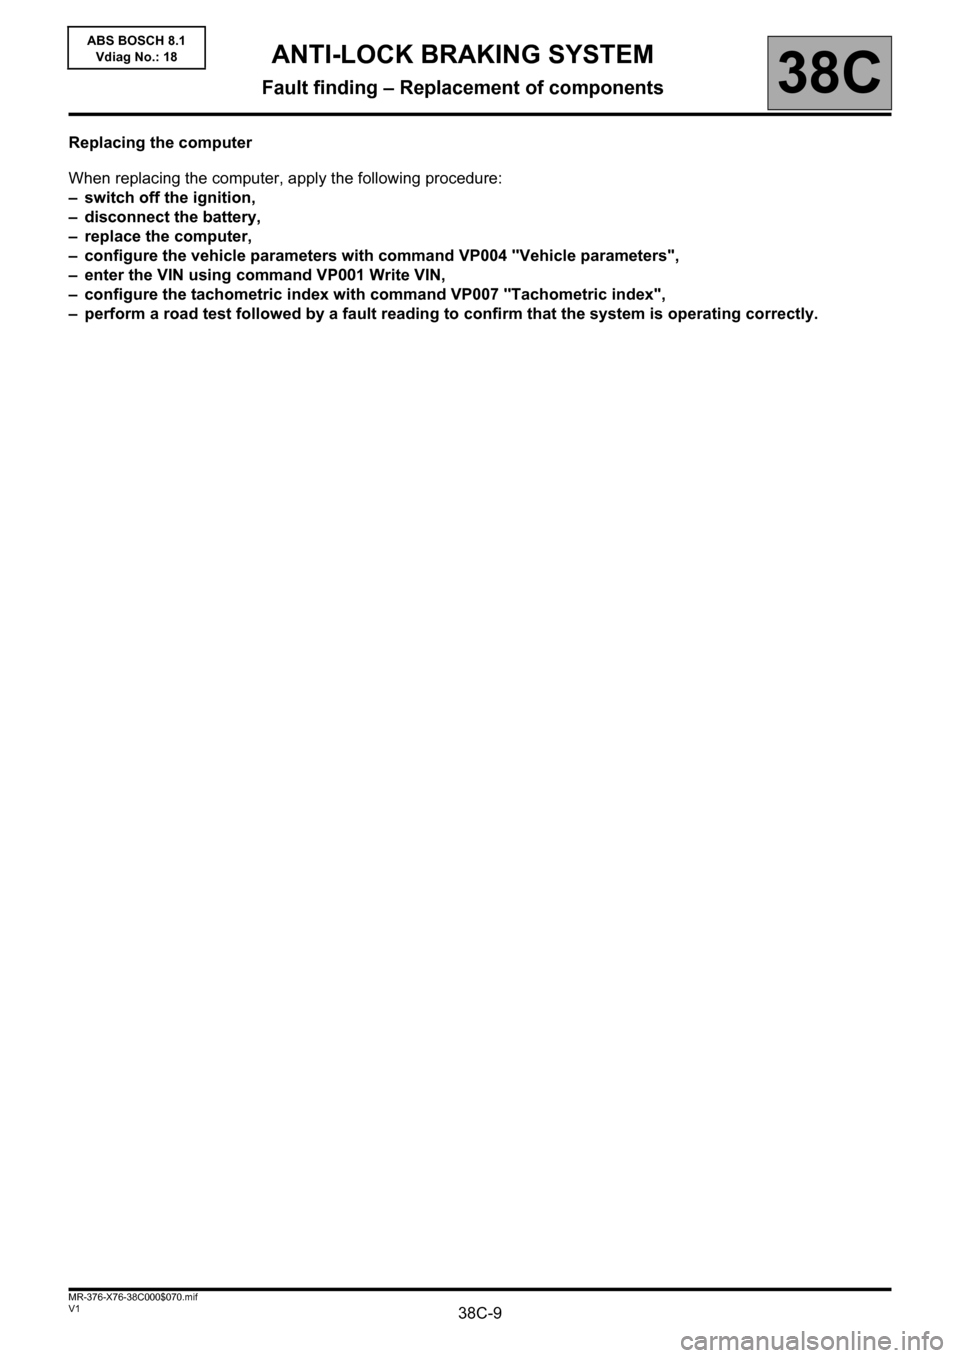 RENAULT KANGOO 2013 X61 / 2.G ABS Bosch 8.1 Workshop Manual, Page 9